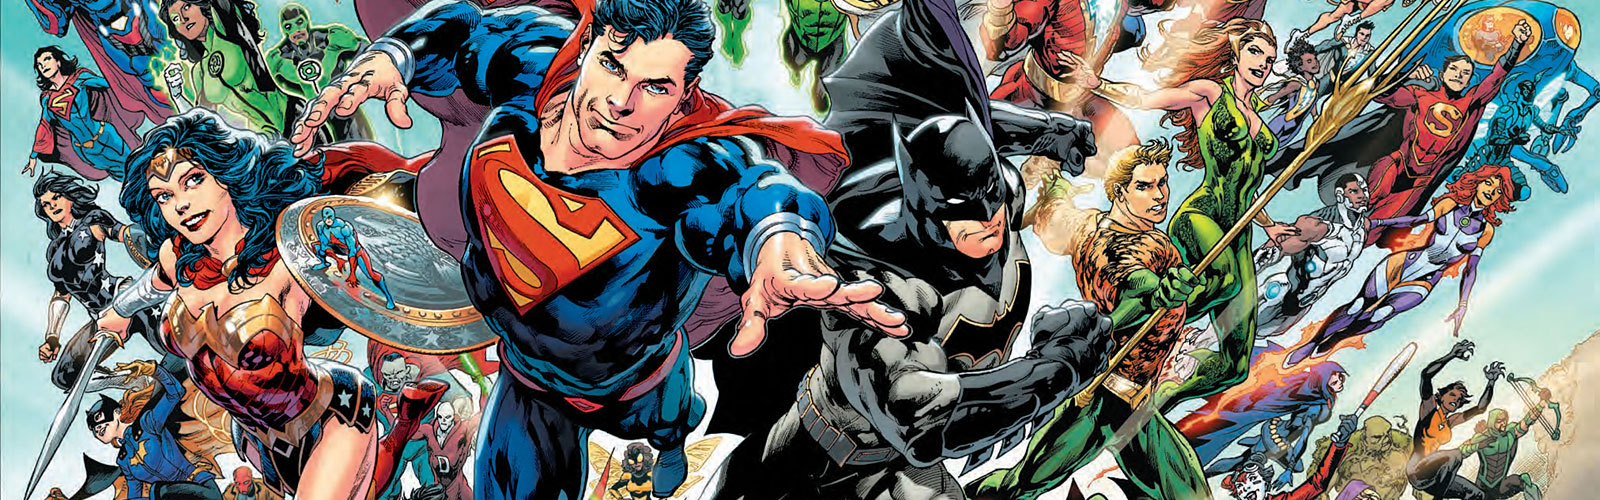 New Releases - 25-05-16, featuring DC Universe: Rebirth #1